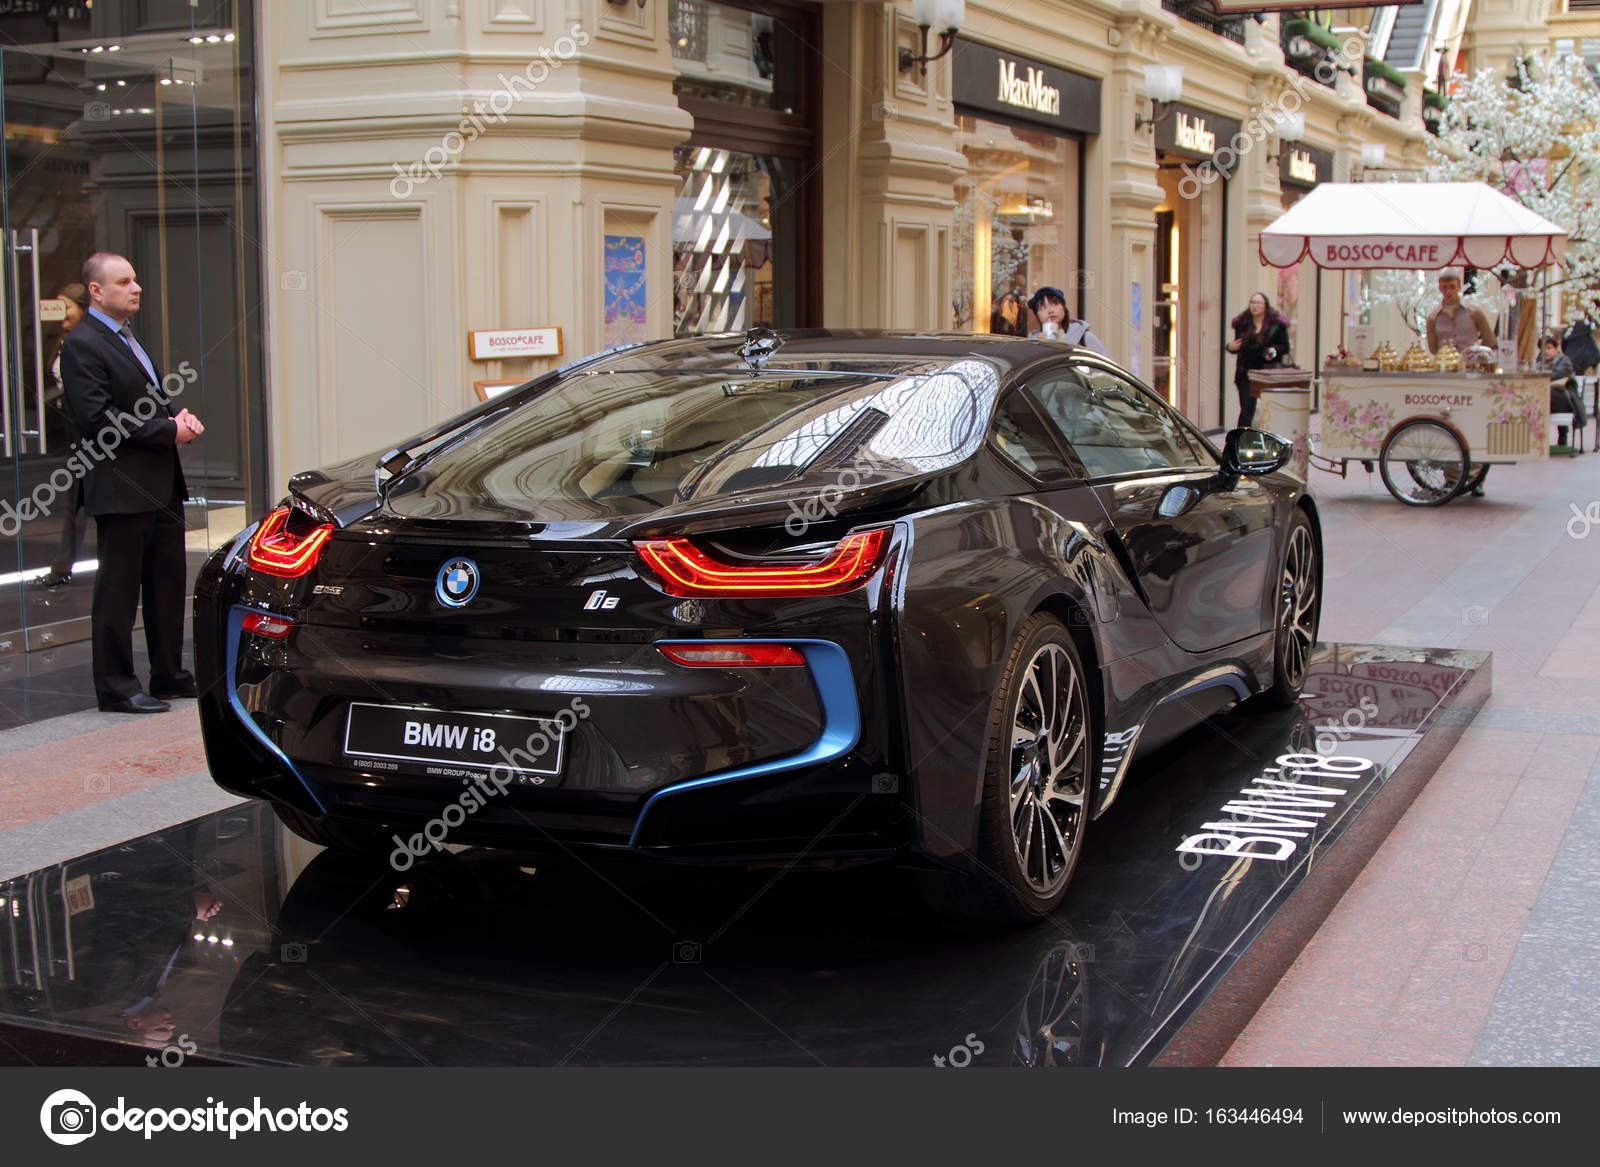 Luxury Bmw I8 Hybrid Electric Coupe On Sale At The State Departm